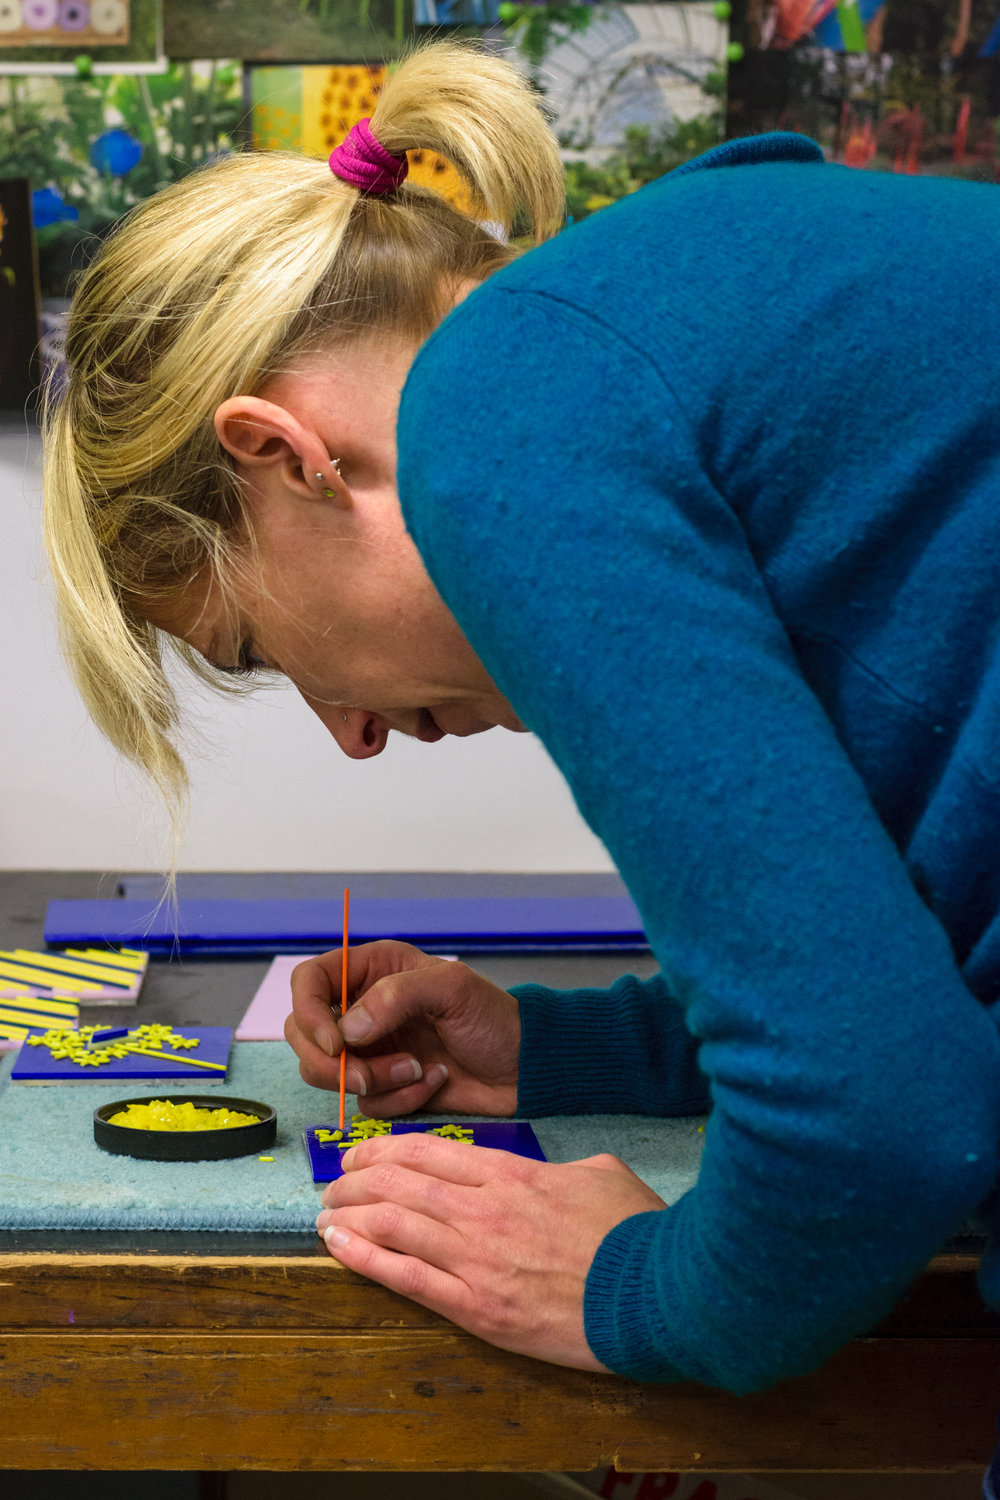 Cressa McLaren at work Glasgow Glass Artist